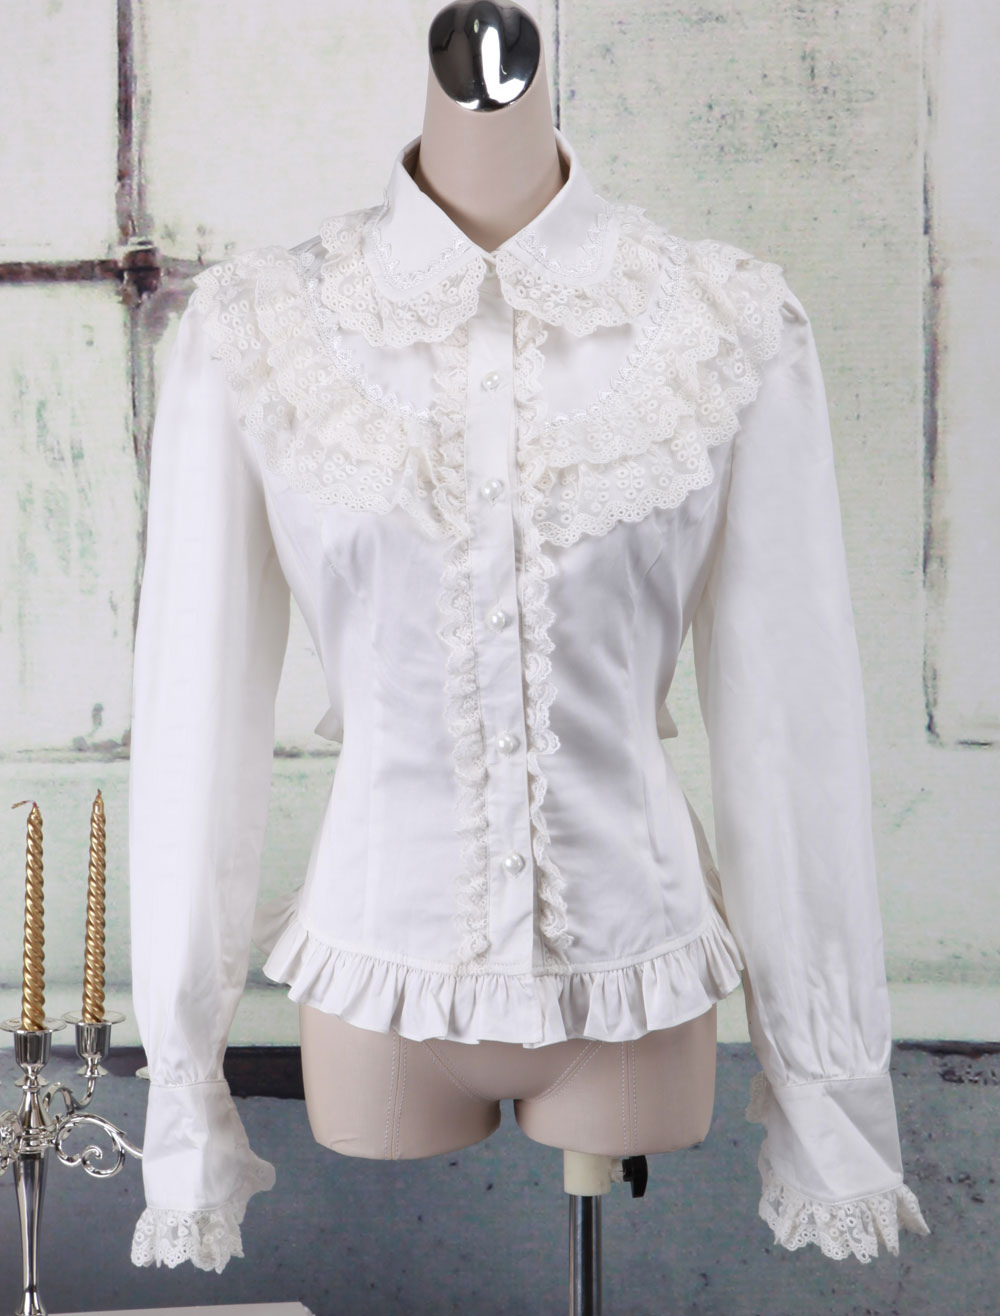 Buy White Cotton Lolita Blouse Long Sleeves Lace Trim Turn-down Collar Ruffles for $42.29 in Milanoo store